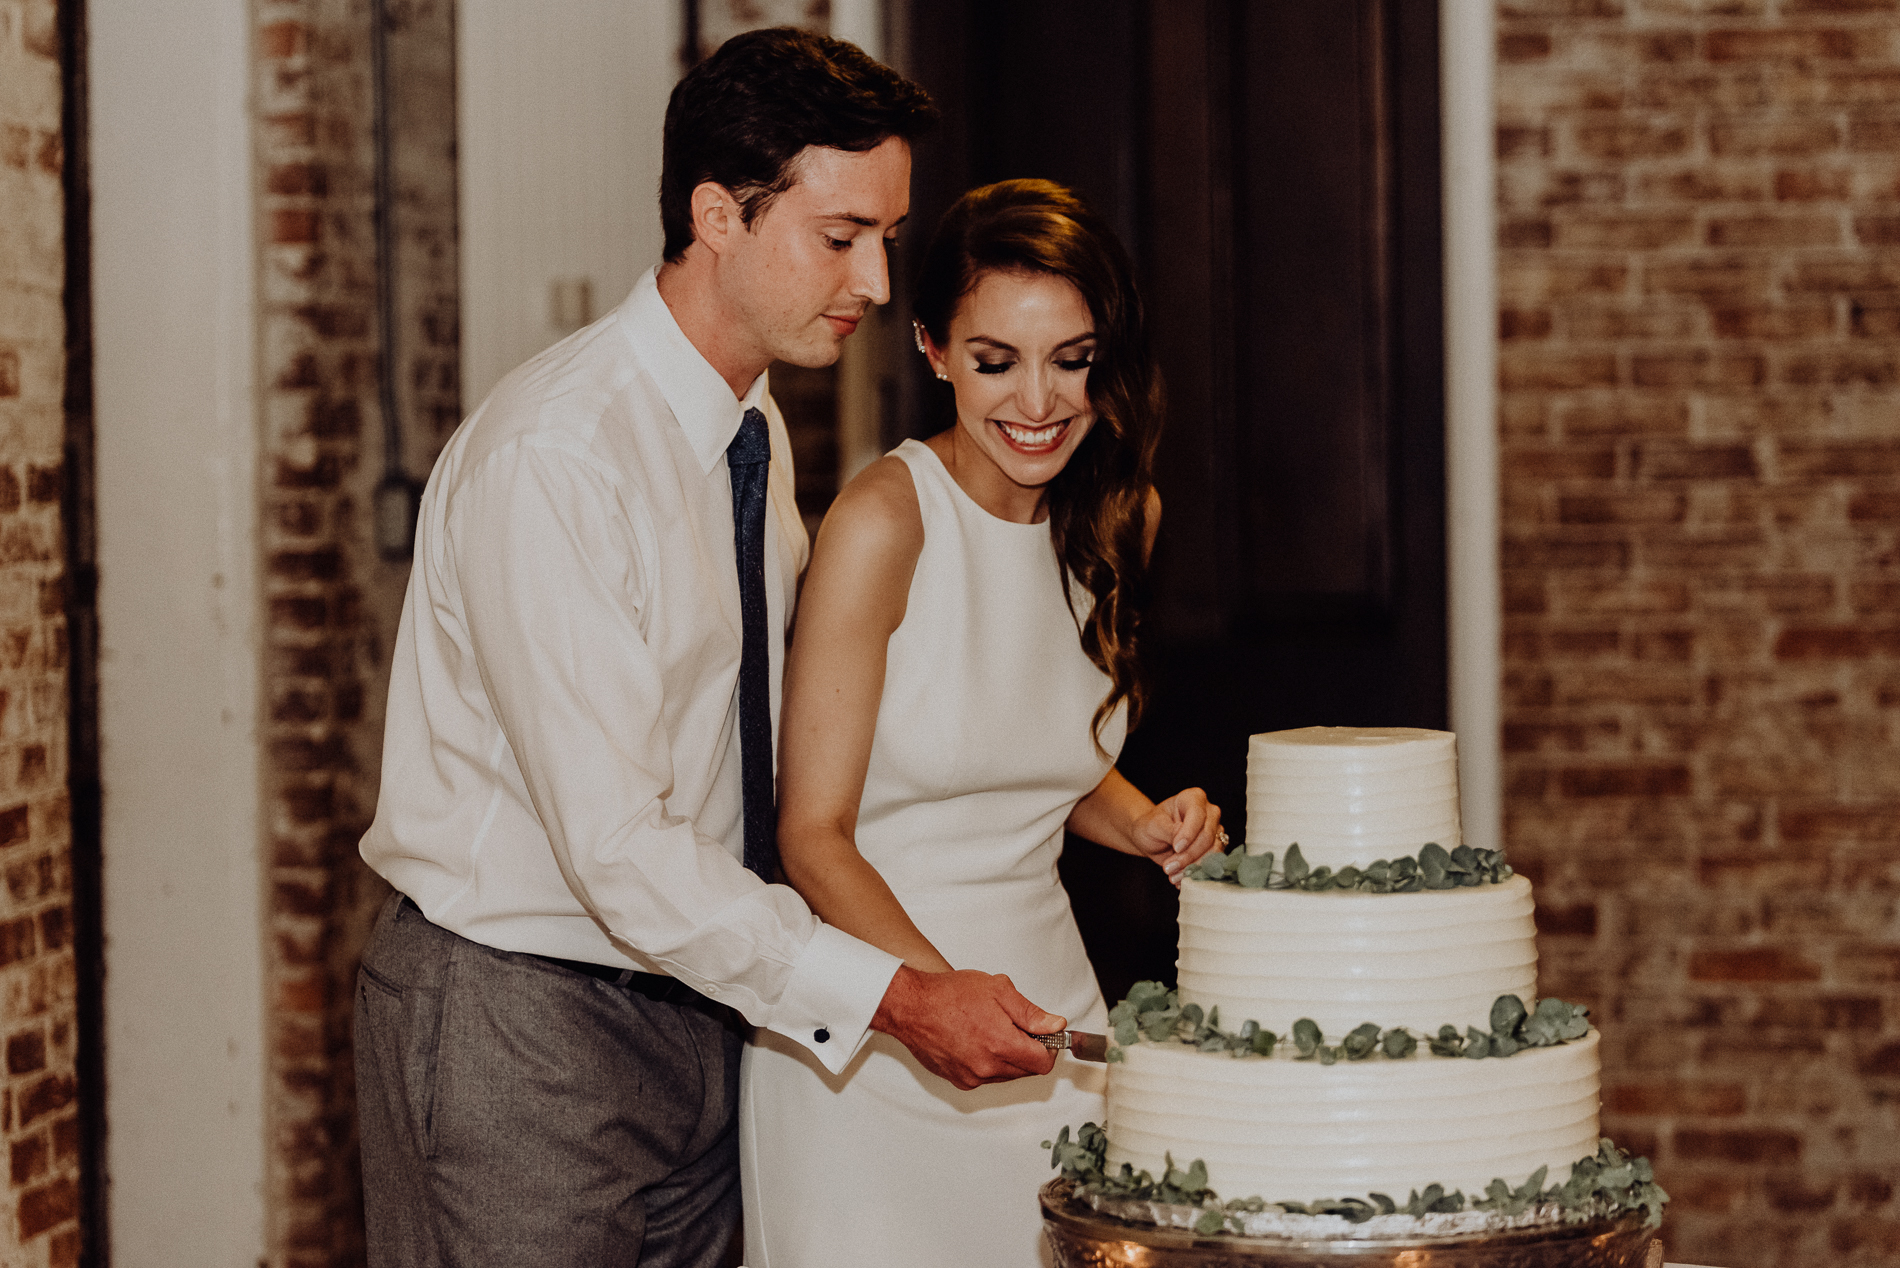 gabi and campbell east nashville wedding at riverwood mansion by wilde company-44.jpg